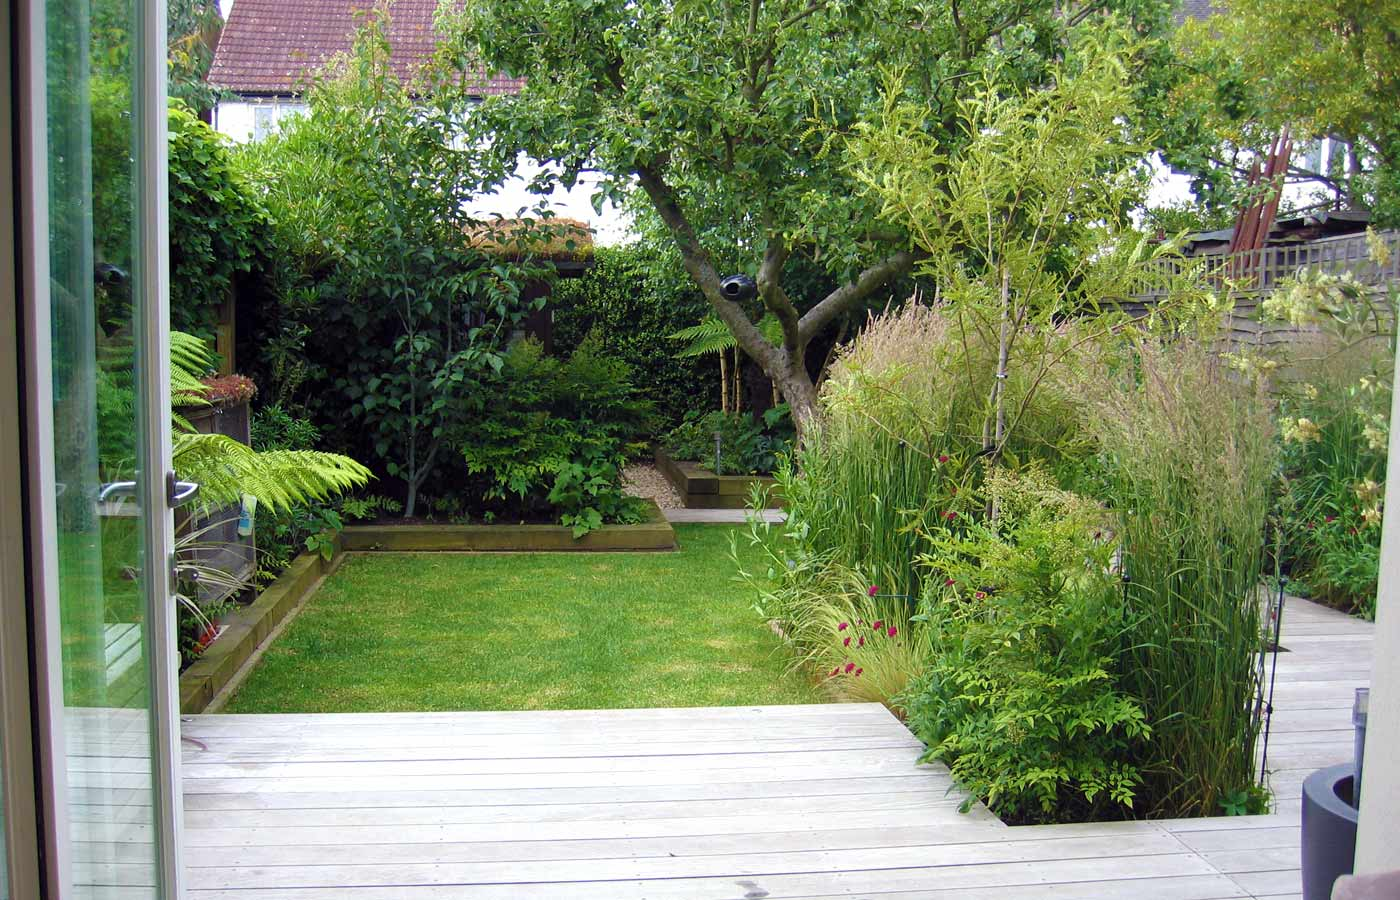 Pool Liten Rund Garden Design For Small Garden With Decking